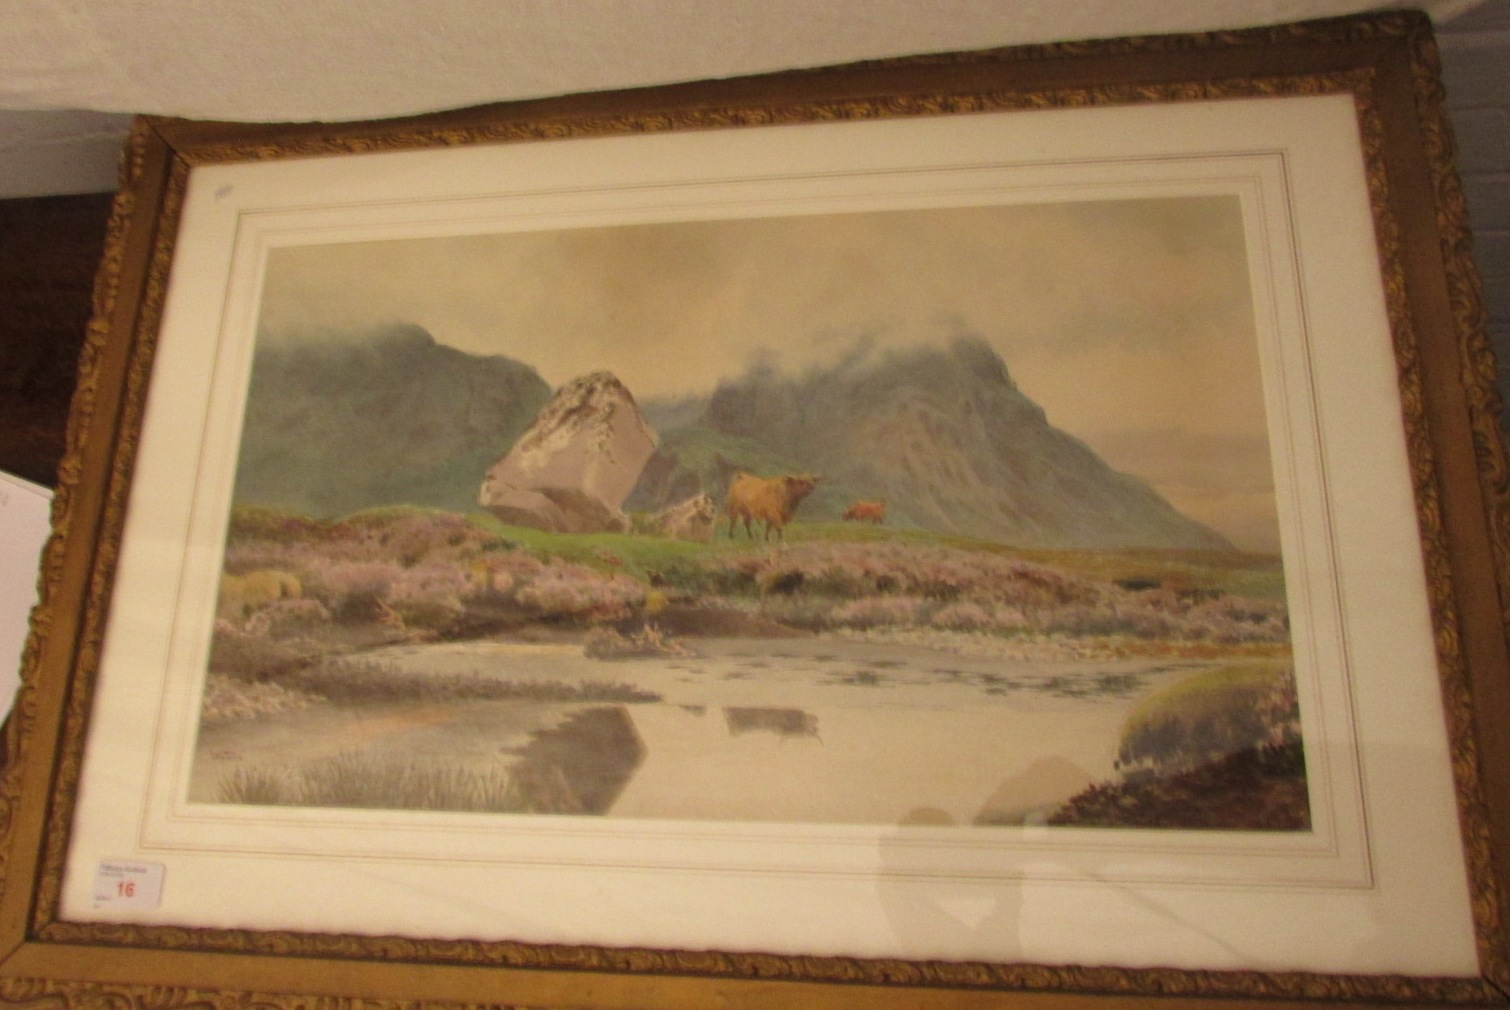 Lot 16 - Moorland landscape with cattle and boulders, watercolour, signed Wynne lower left, (31cm x 53cm)